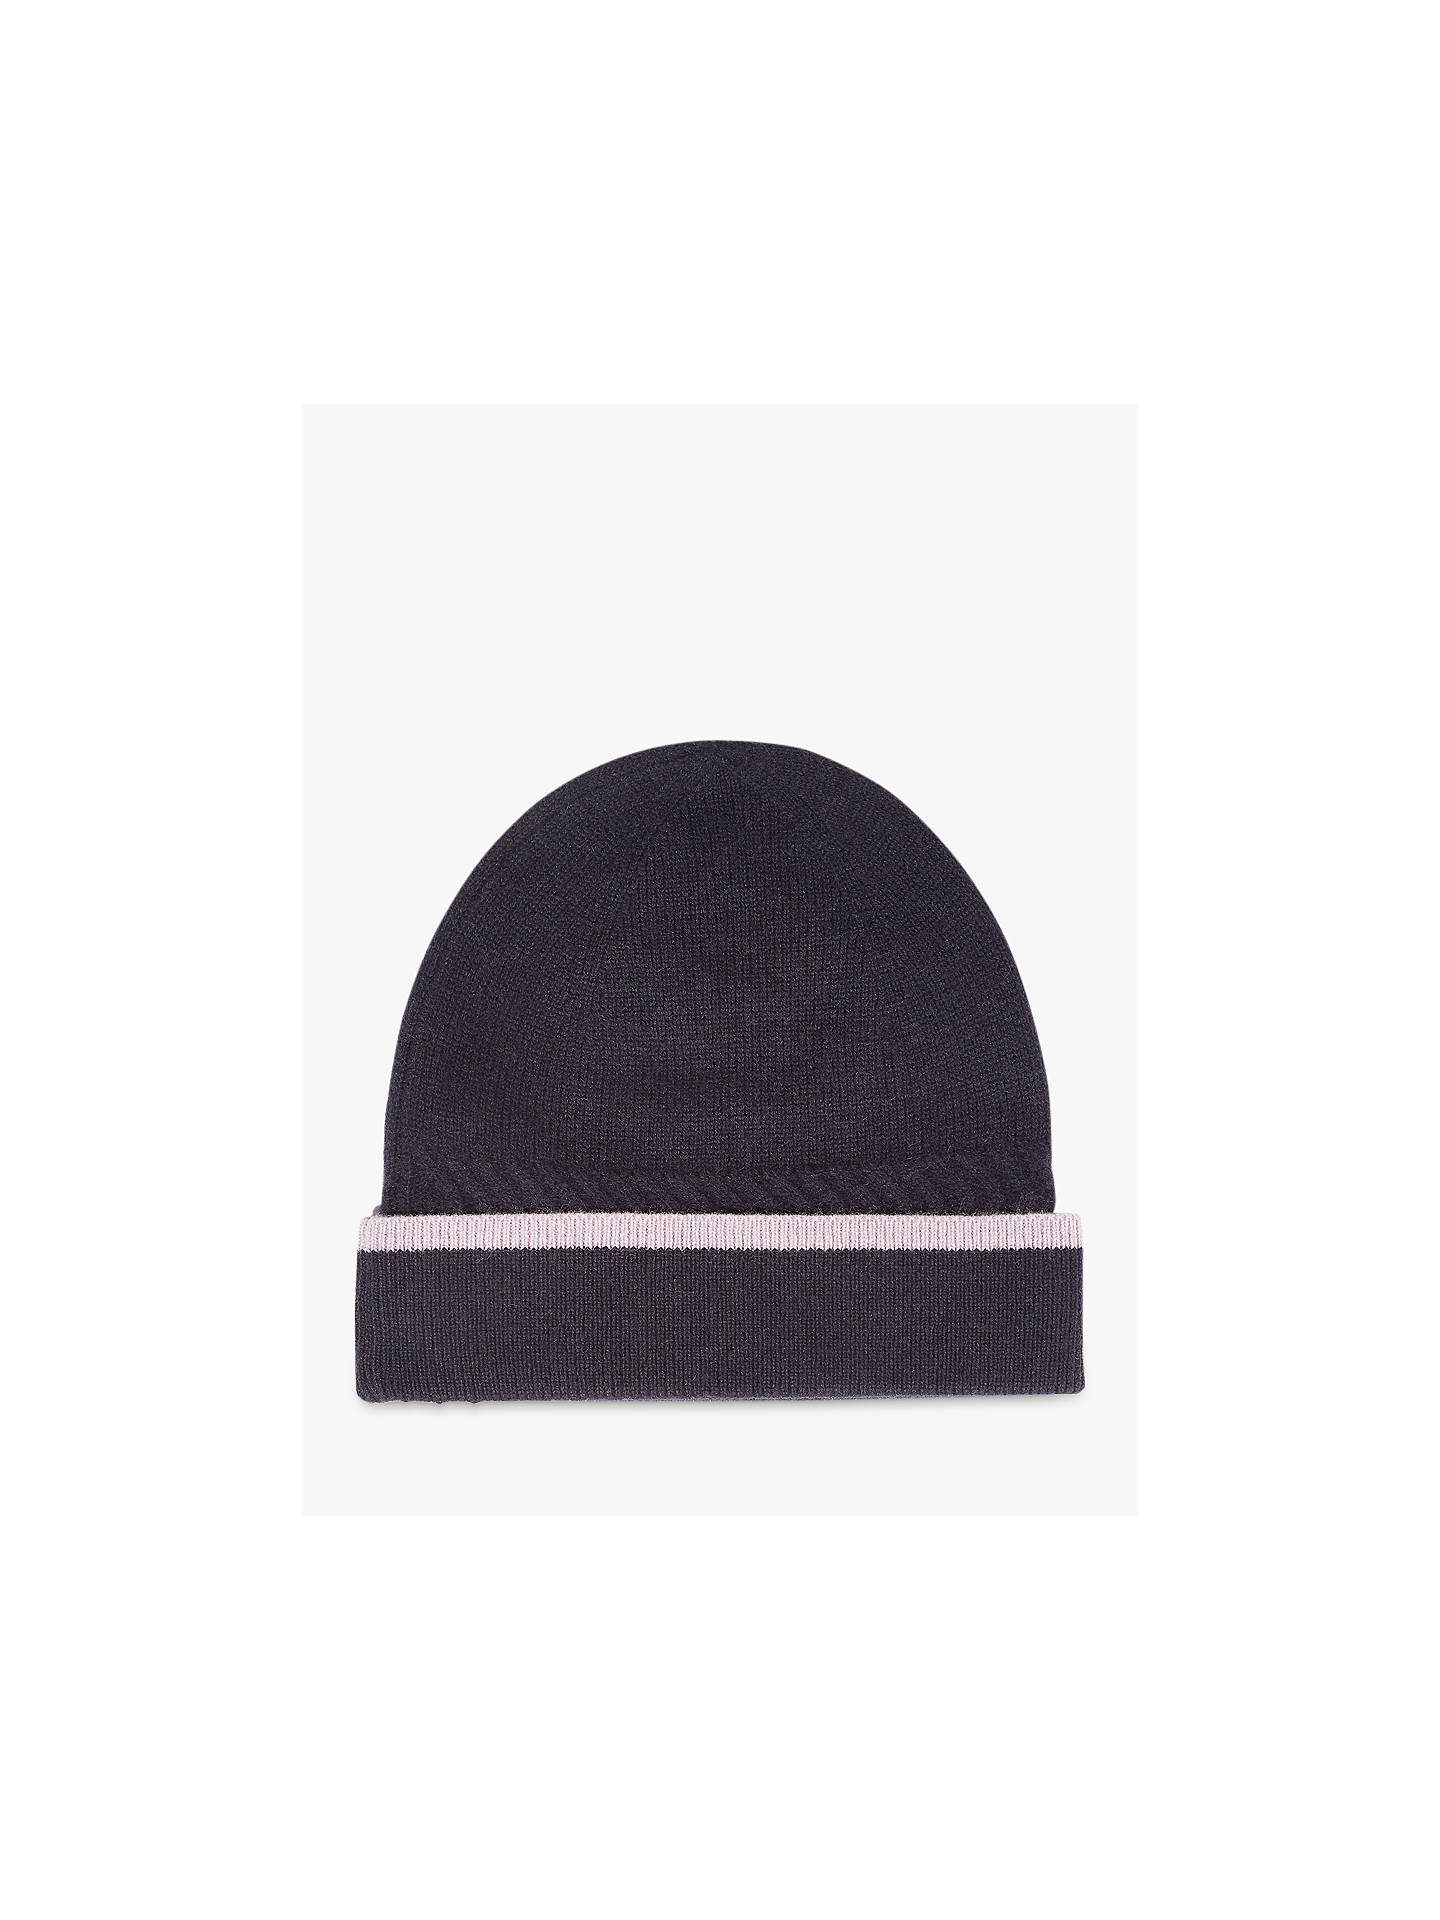 9e21d674dc8 Buy Jigsaw Contrast Edge Hat